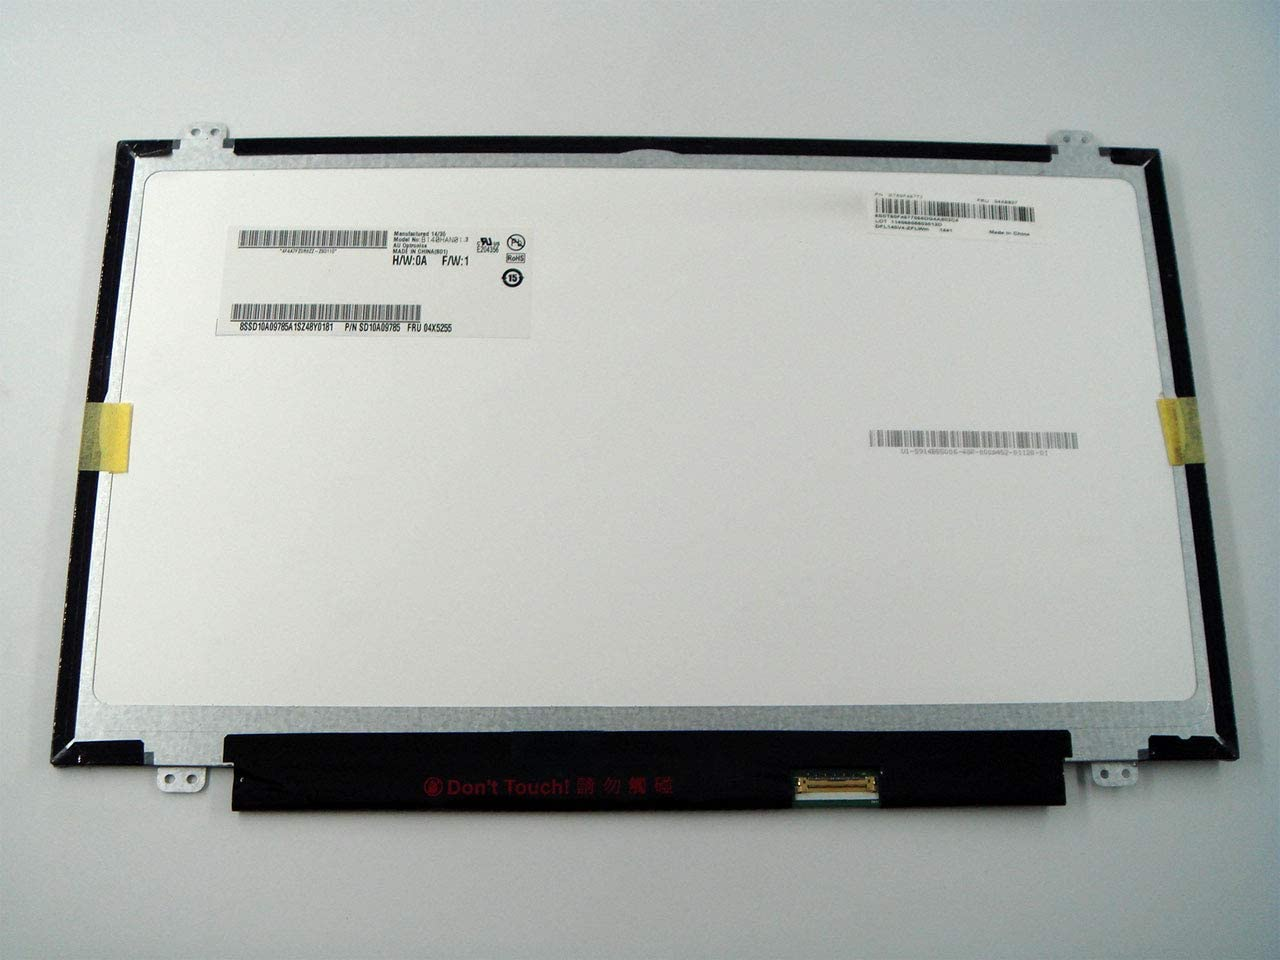 """Genuine Parts for Lenovo ThinkPad T440S,T450S,T440,T450, 14.0"""" IPS FHD (1920x1080) LCD Screen Module B140HAN01.3 Non-Touch"""